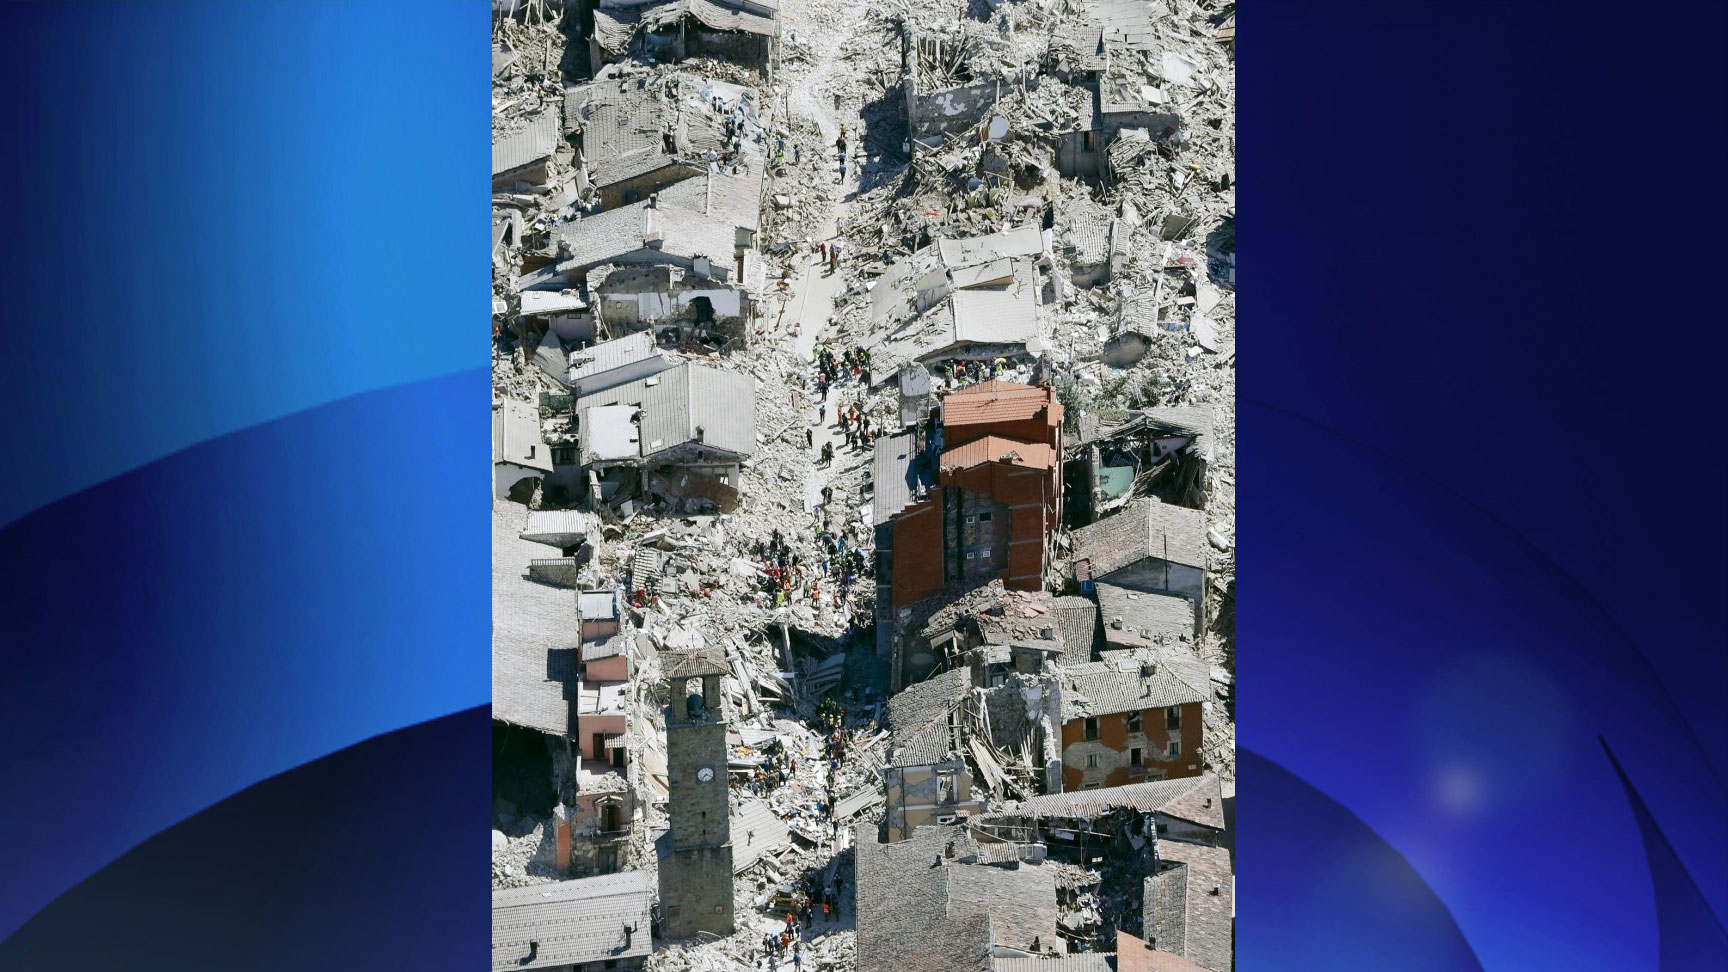 This aerial photo shows the historical part of the town of Amatrice, central Italy, after an earthquake on Aug. 24, 2016. THE ASSOCIATED PRESS/Gregorio Borgia